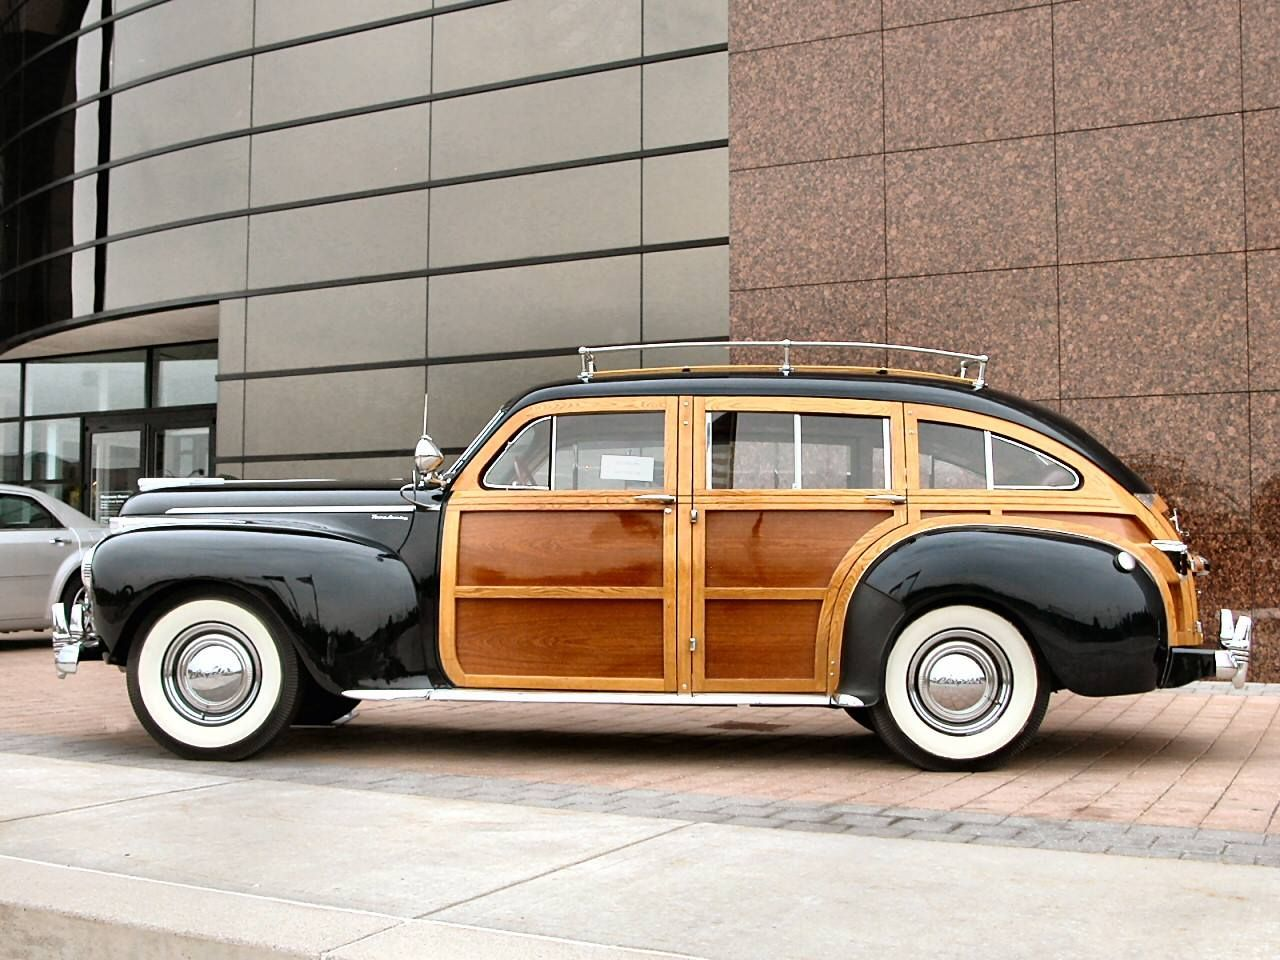 A dream car 1940 packard woody chatwrks thedailybasics classics car hunting pinterest woody dream cars and cars